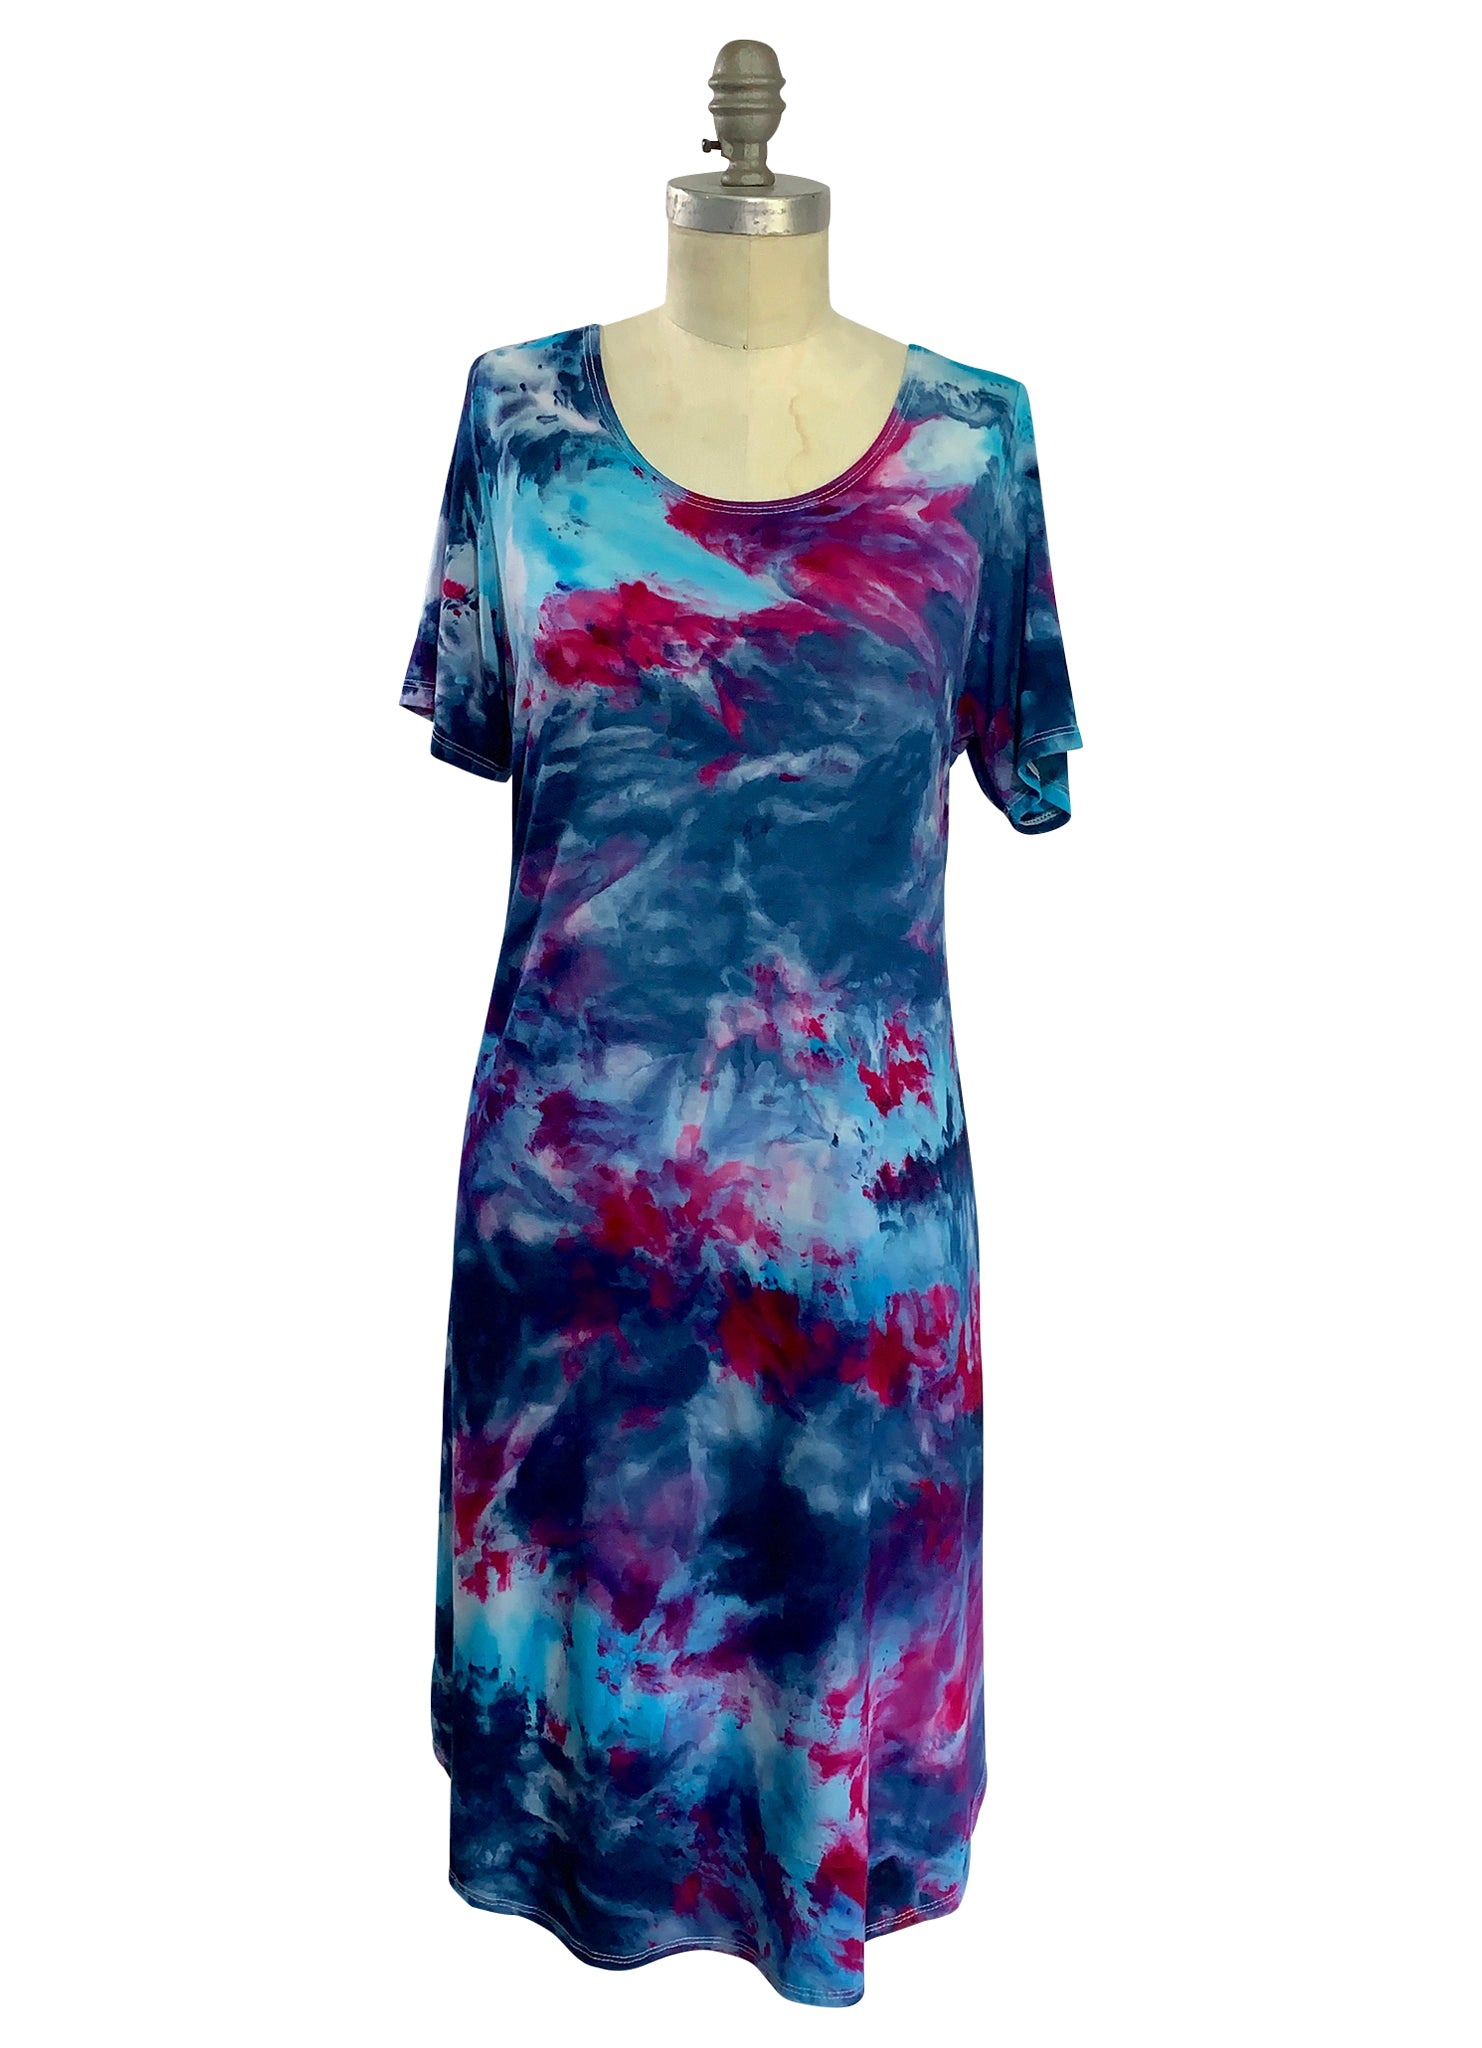 The Perfect Short Sleeve Dress in Midnight Fuchsia - Dyetology